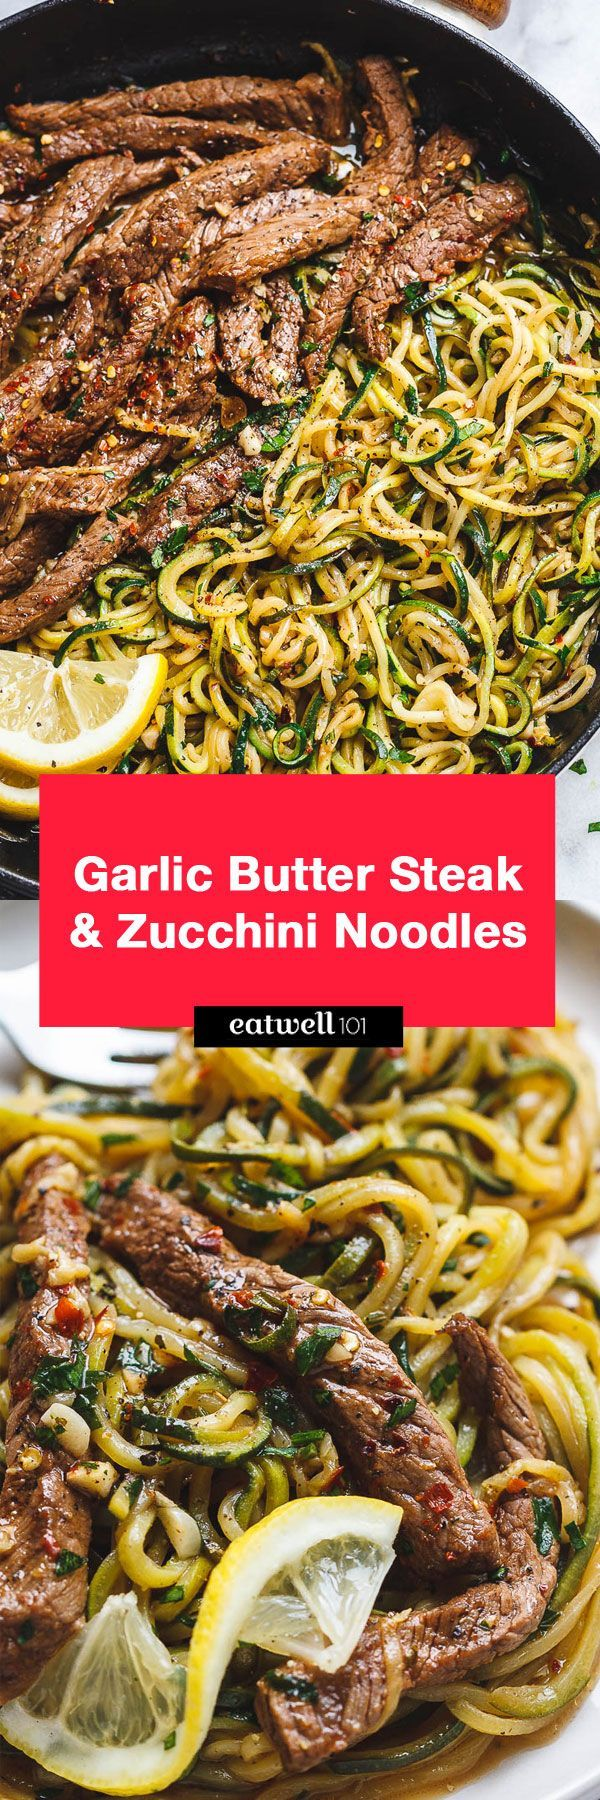 15-Minute Garlic Butter Steak with Zucchini Noodles